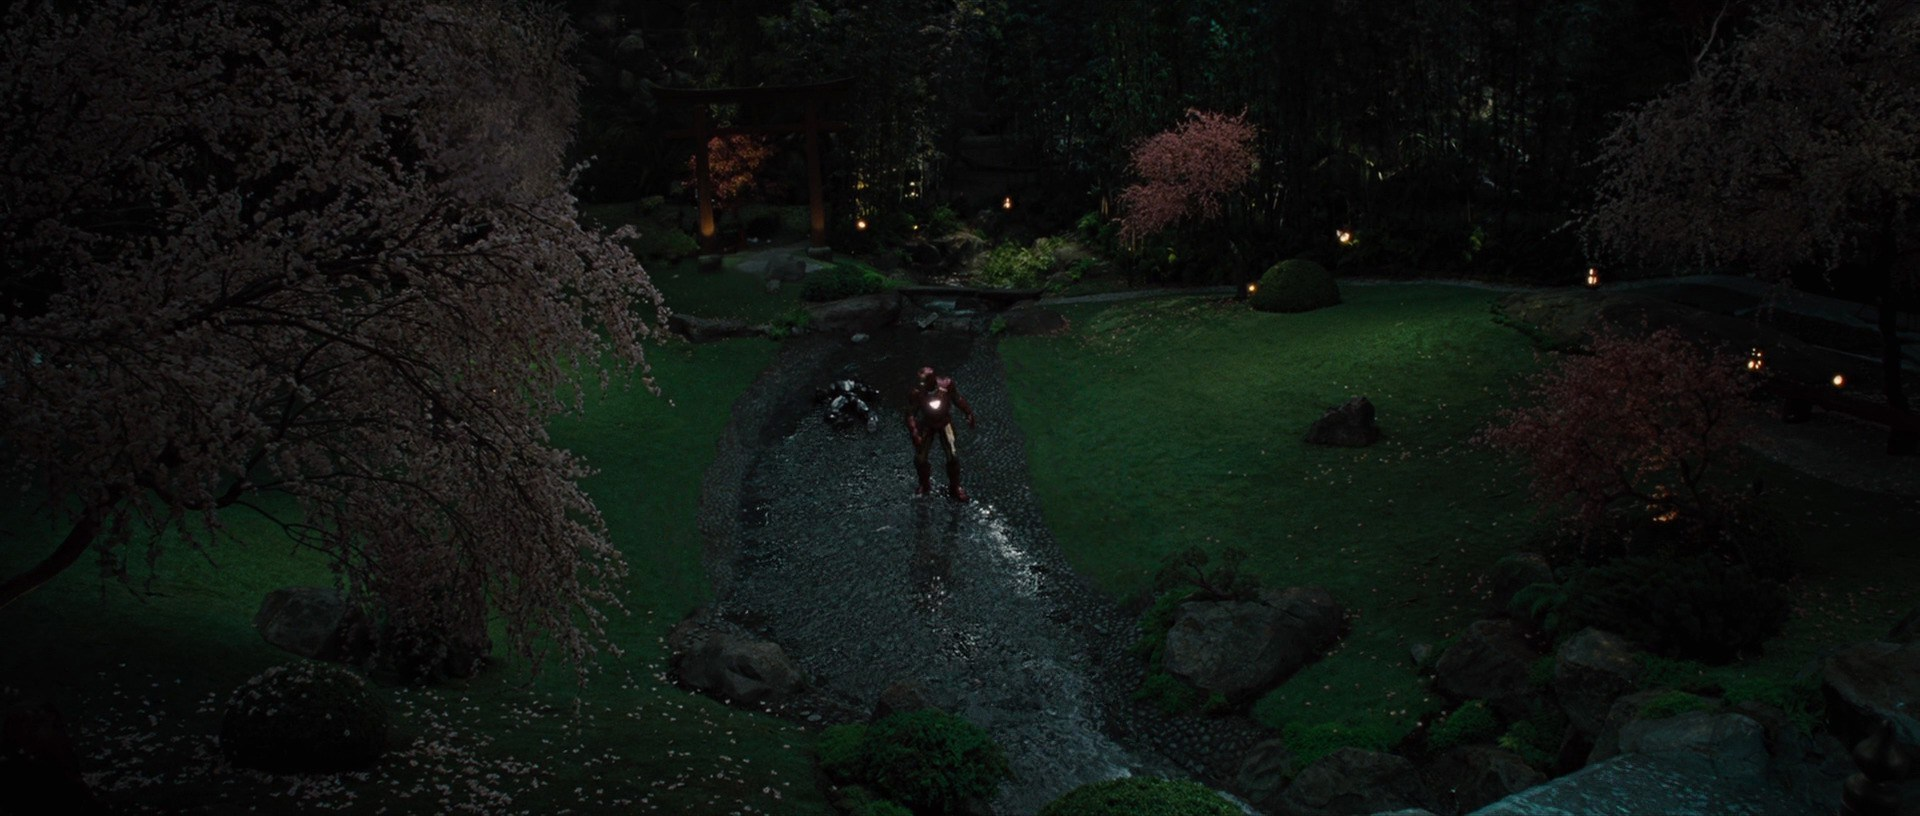 Iron Man 2 Filming Locations | Japanese Gardens